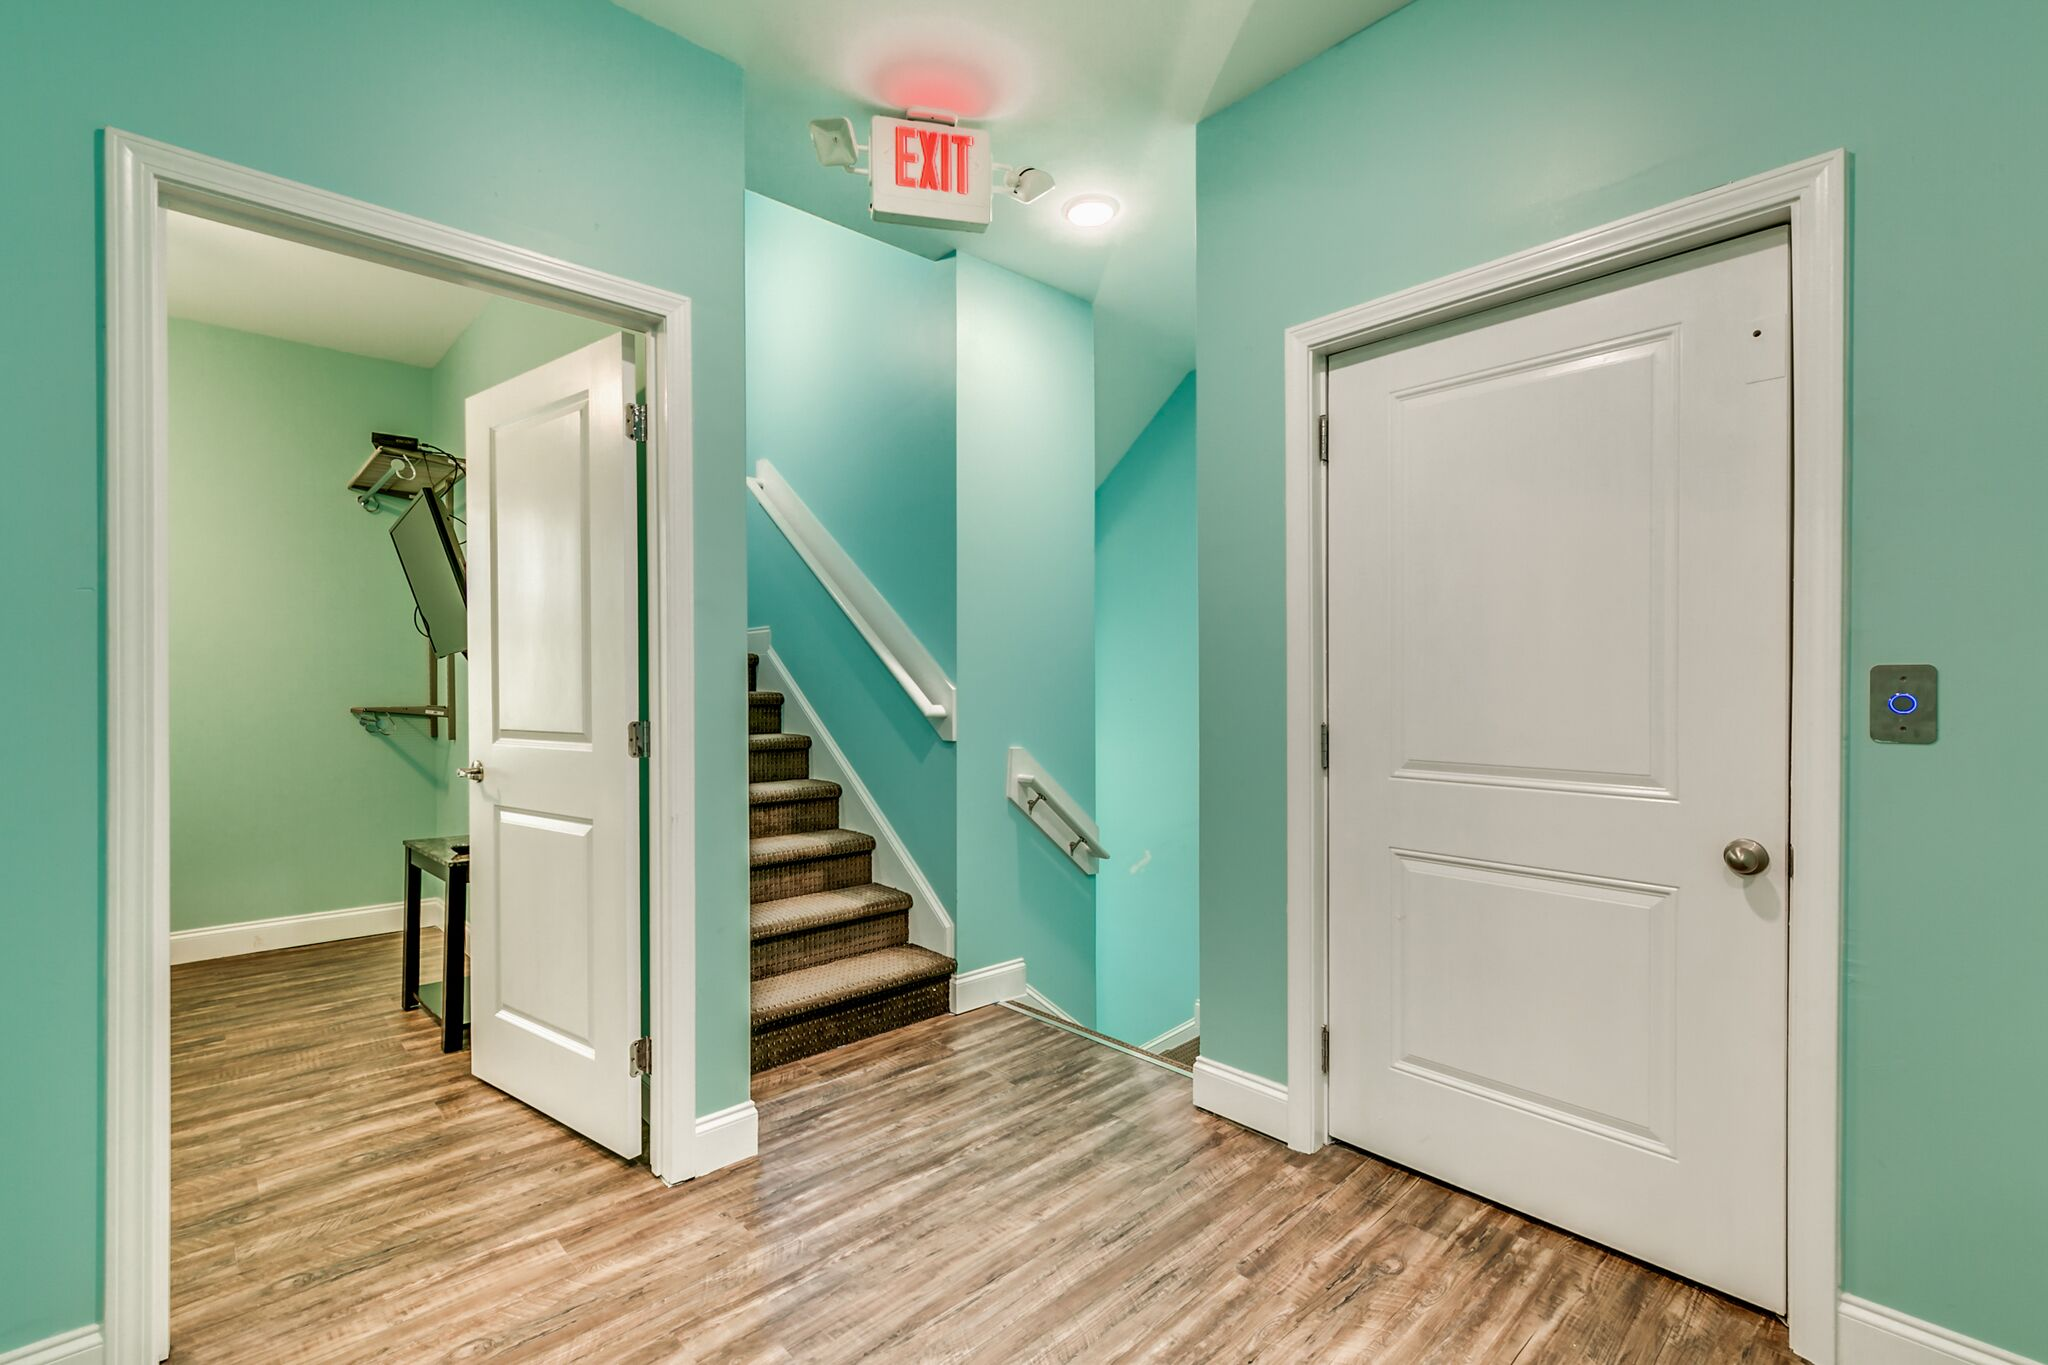 208 3rd Ave hallway and stairs.